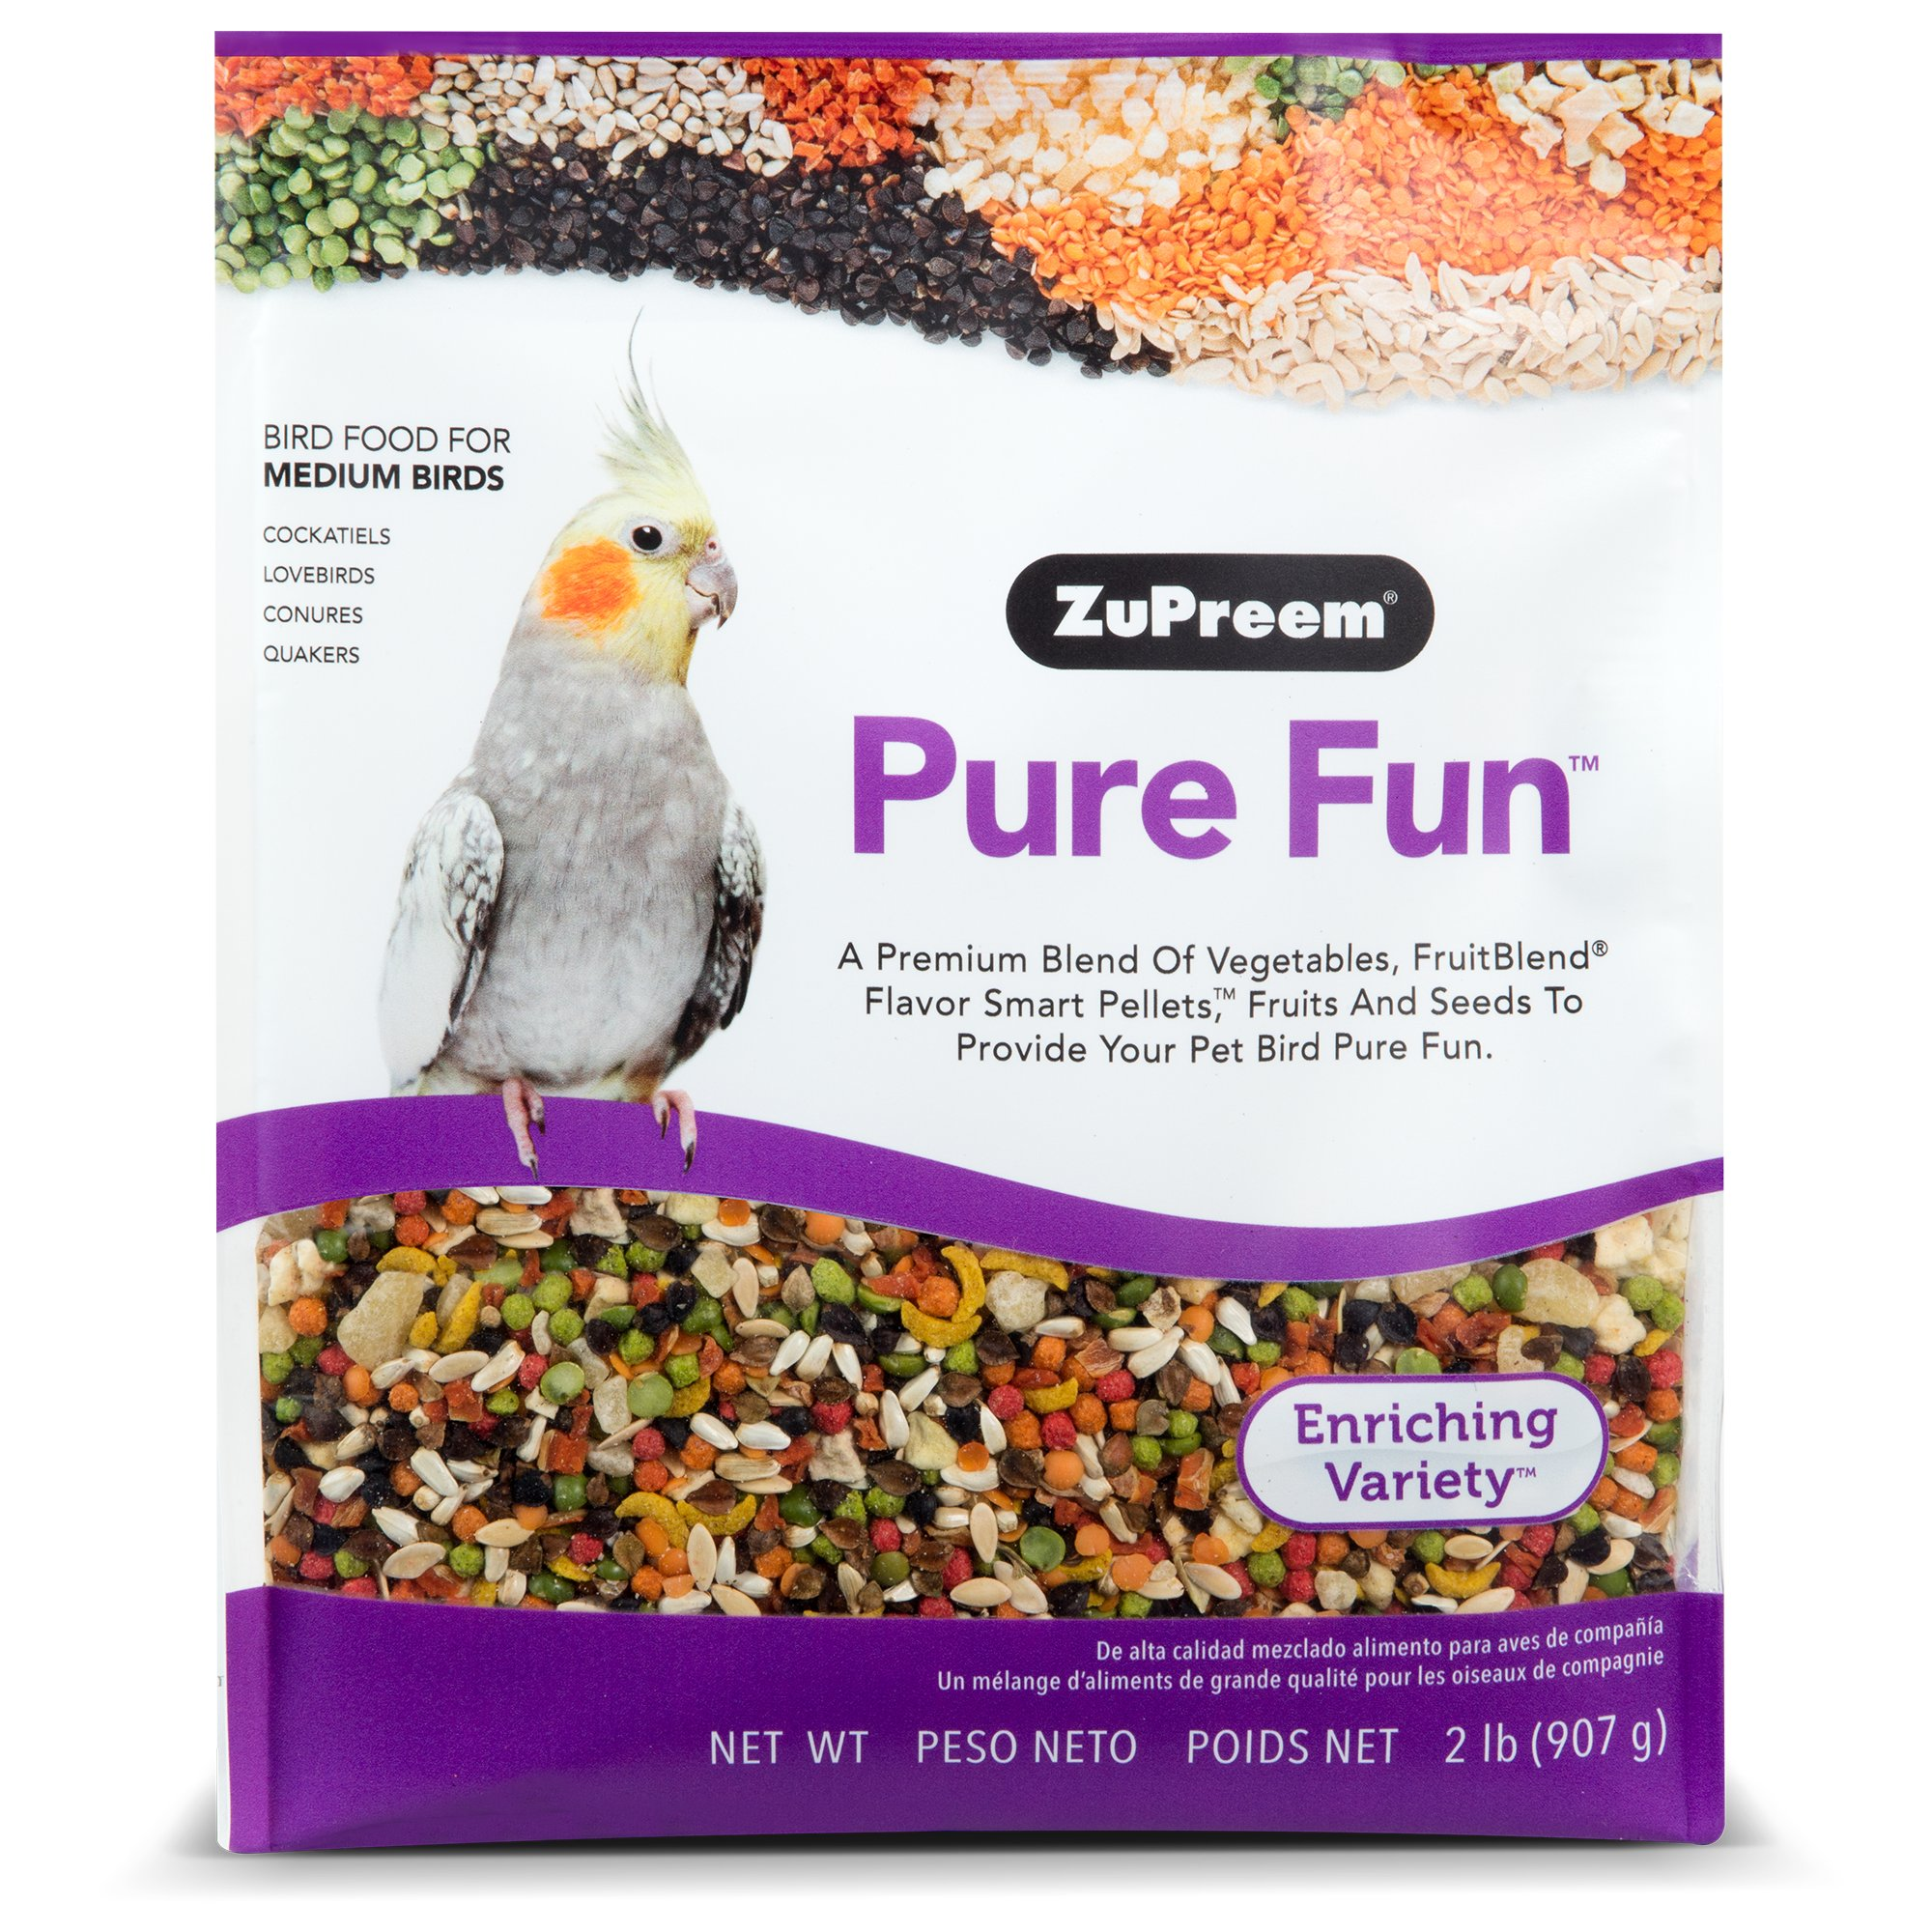 Zupreem Pure Fun Medium Birds : image 1